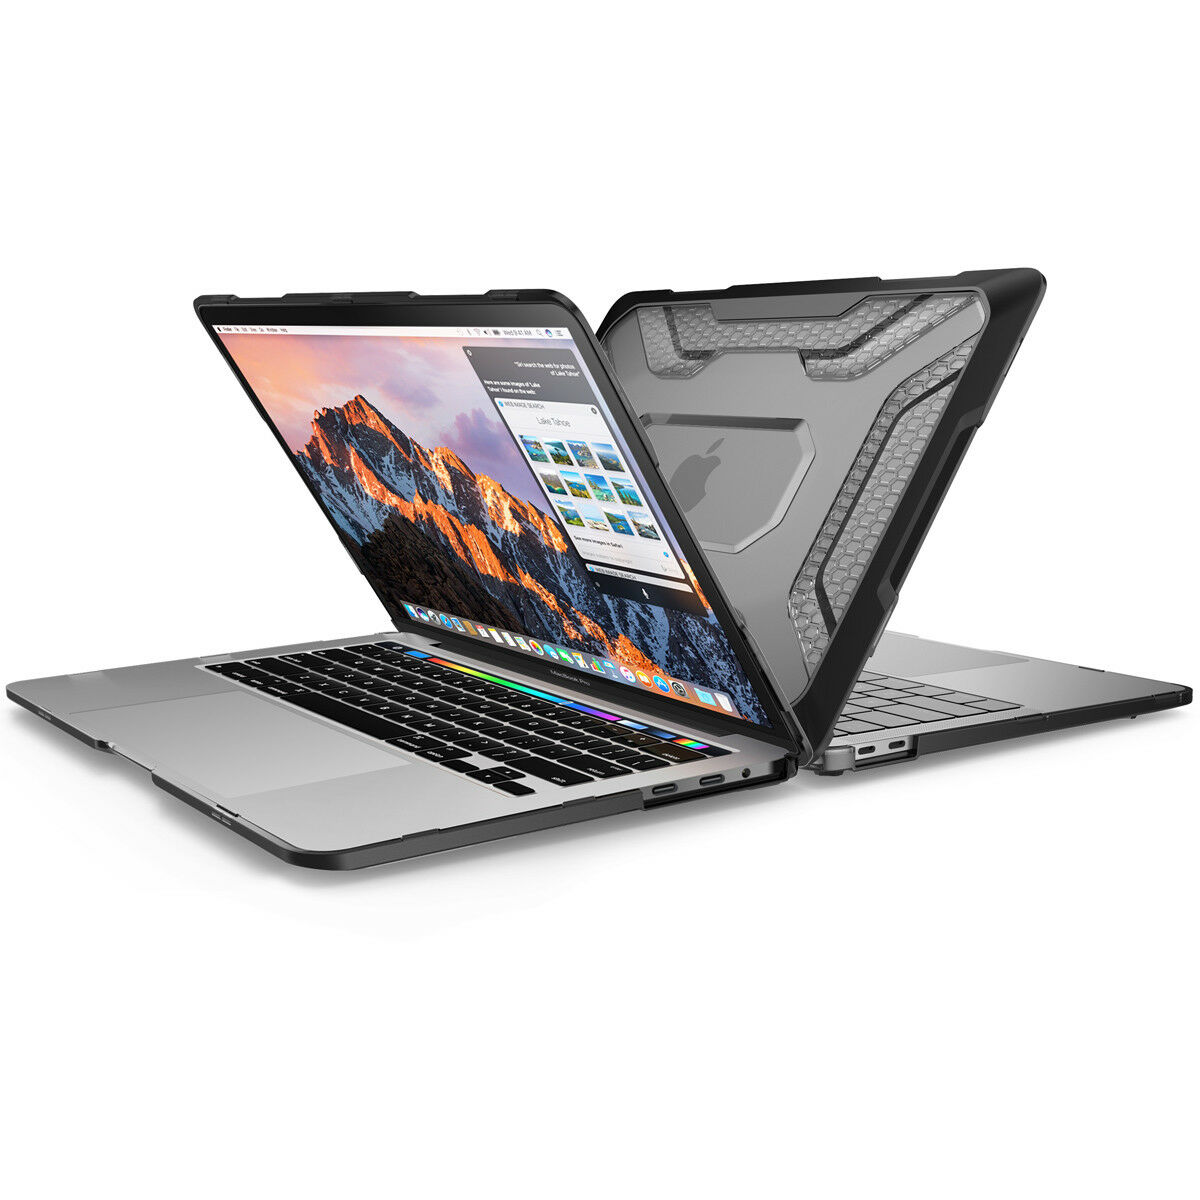 """как выглядит MacBook Pro 13"""" Case 2018 A1989, SUPCASE Slim Rubberized Bumper Protective Cover фото"""